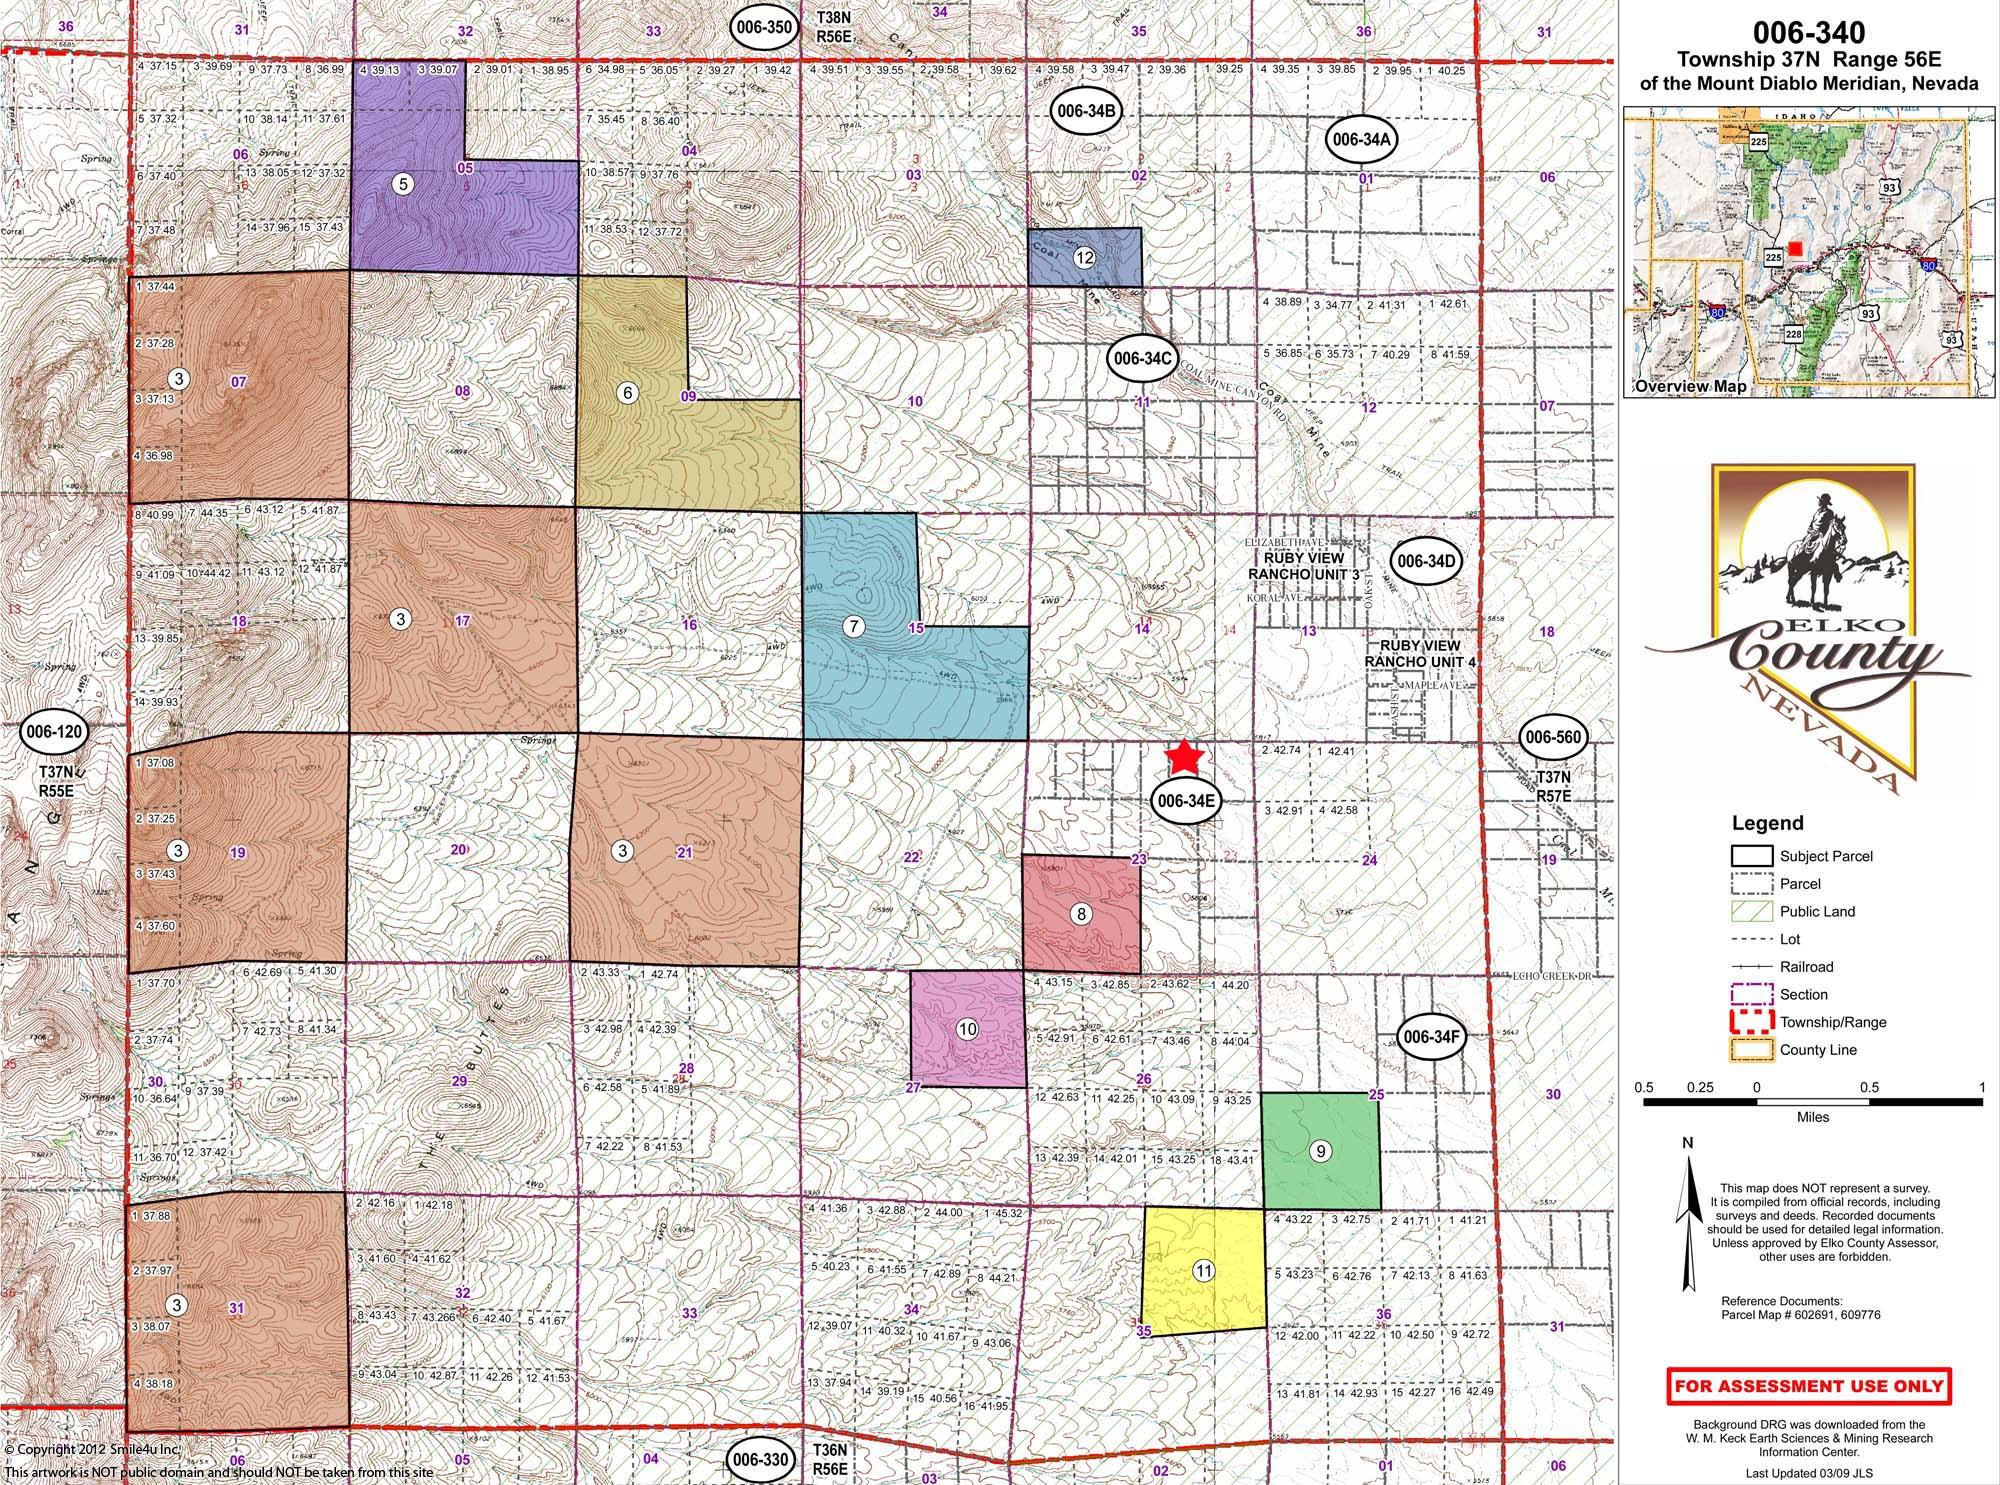 874673_watermarked_T37N R56E Sec23 E2NW4NE4 County Section Map.jpg